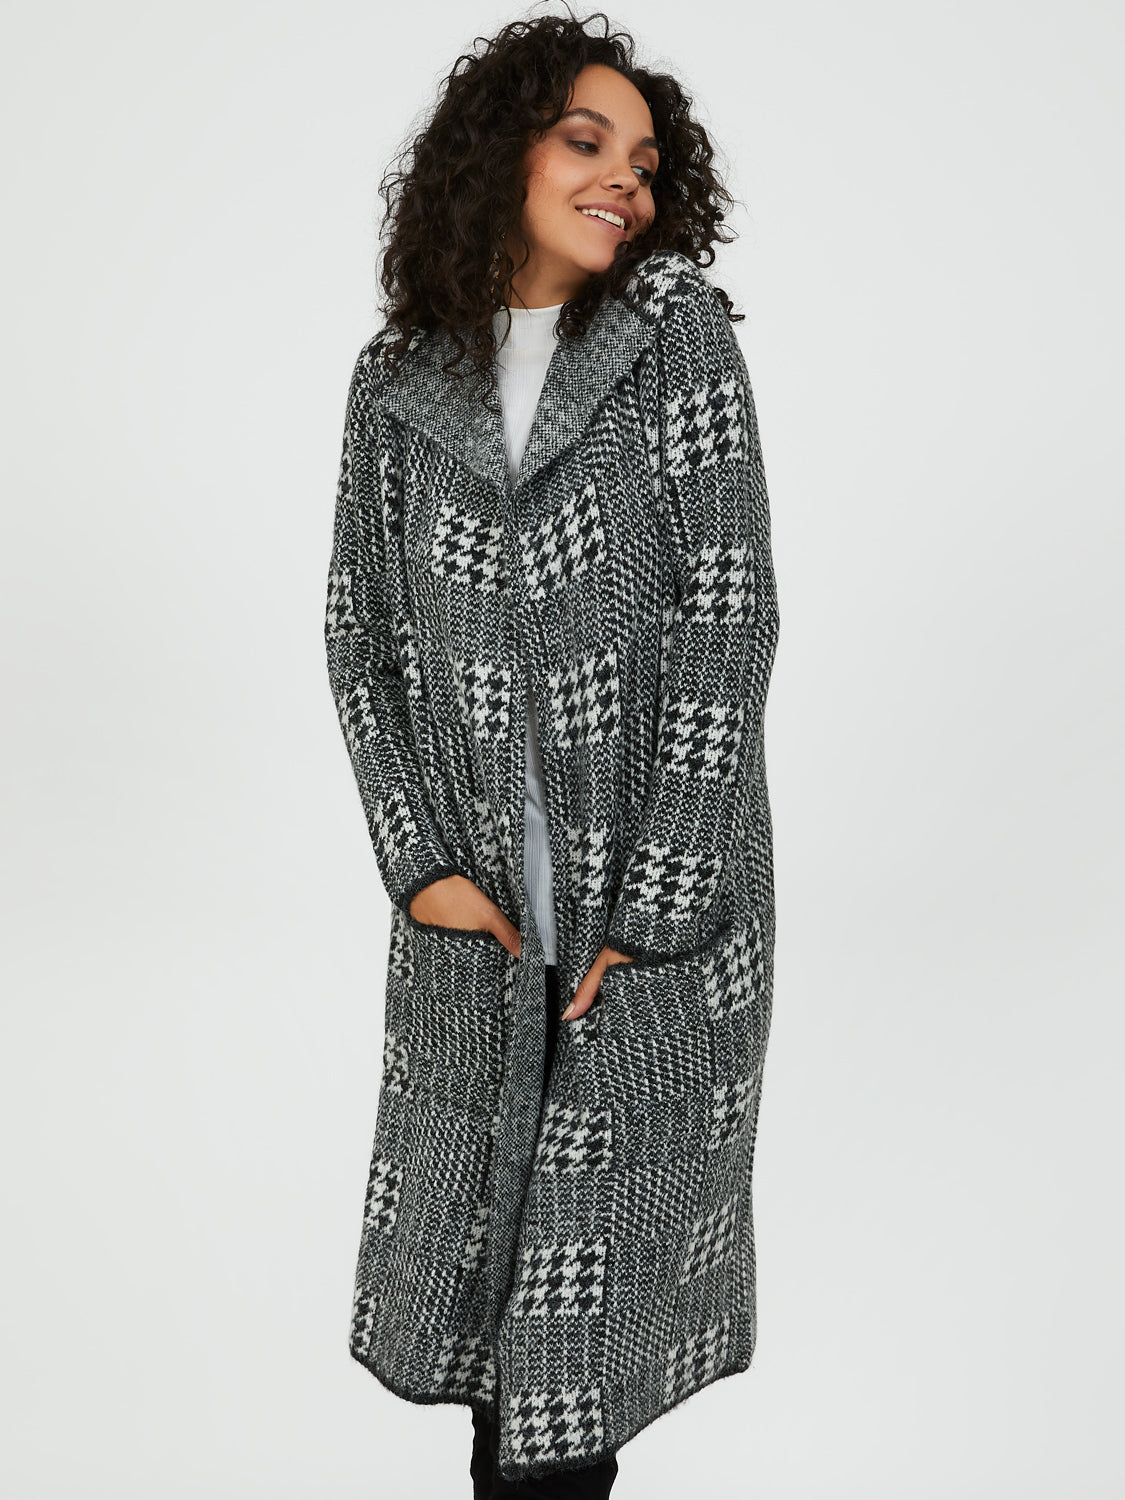 Relaxed Fit Plaid Duster